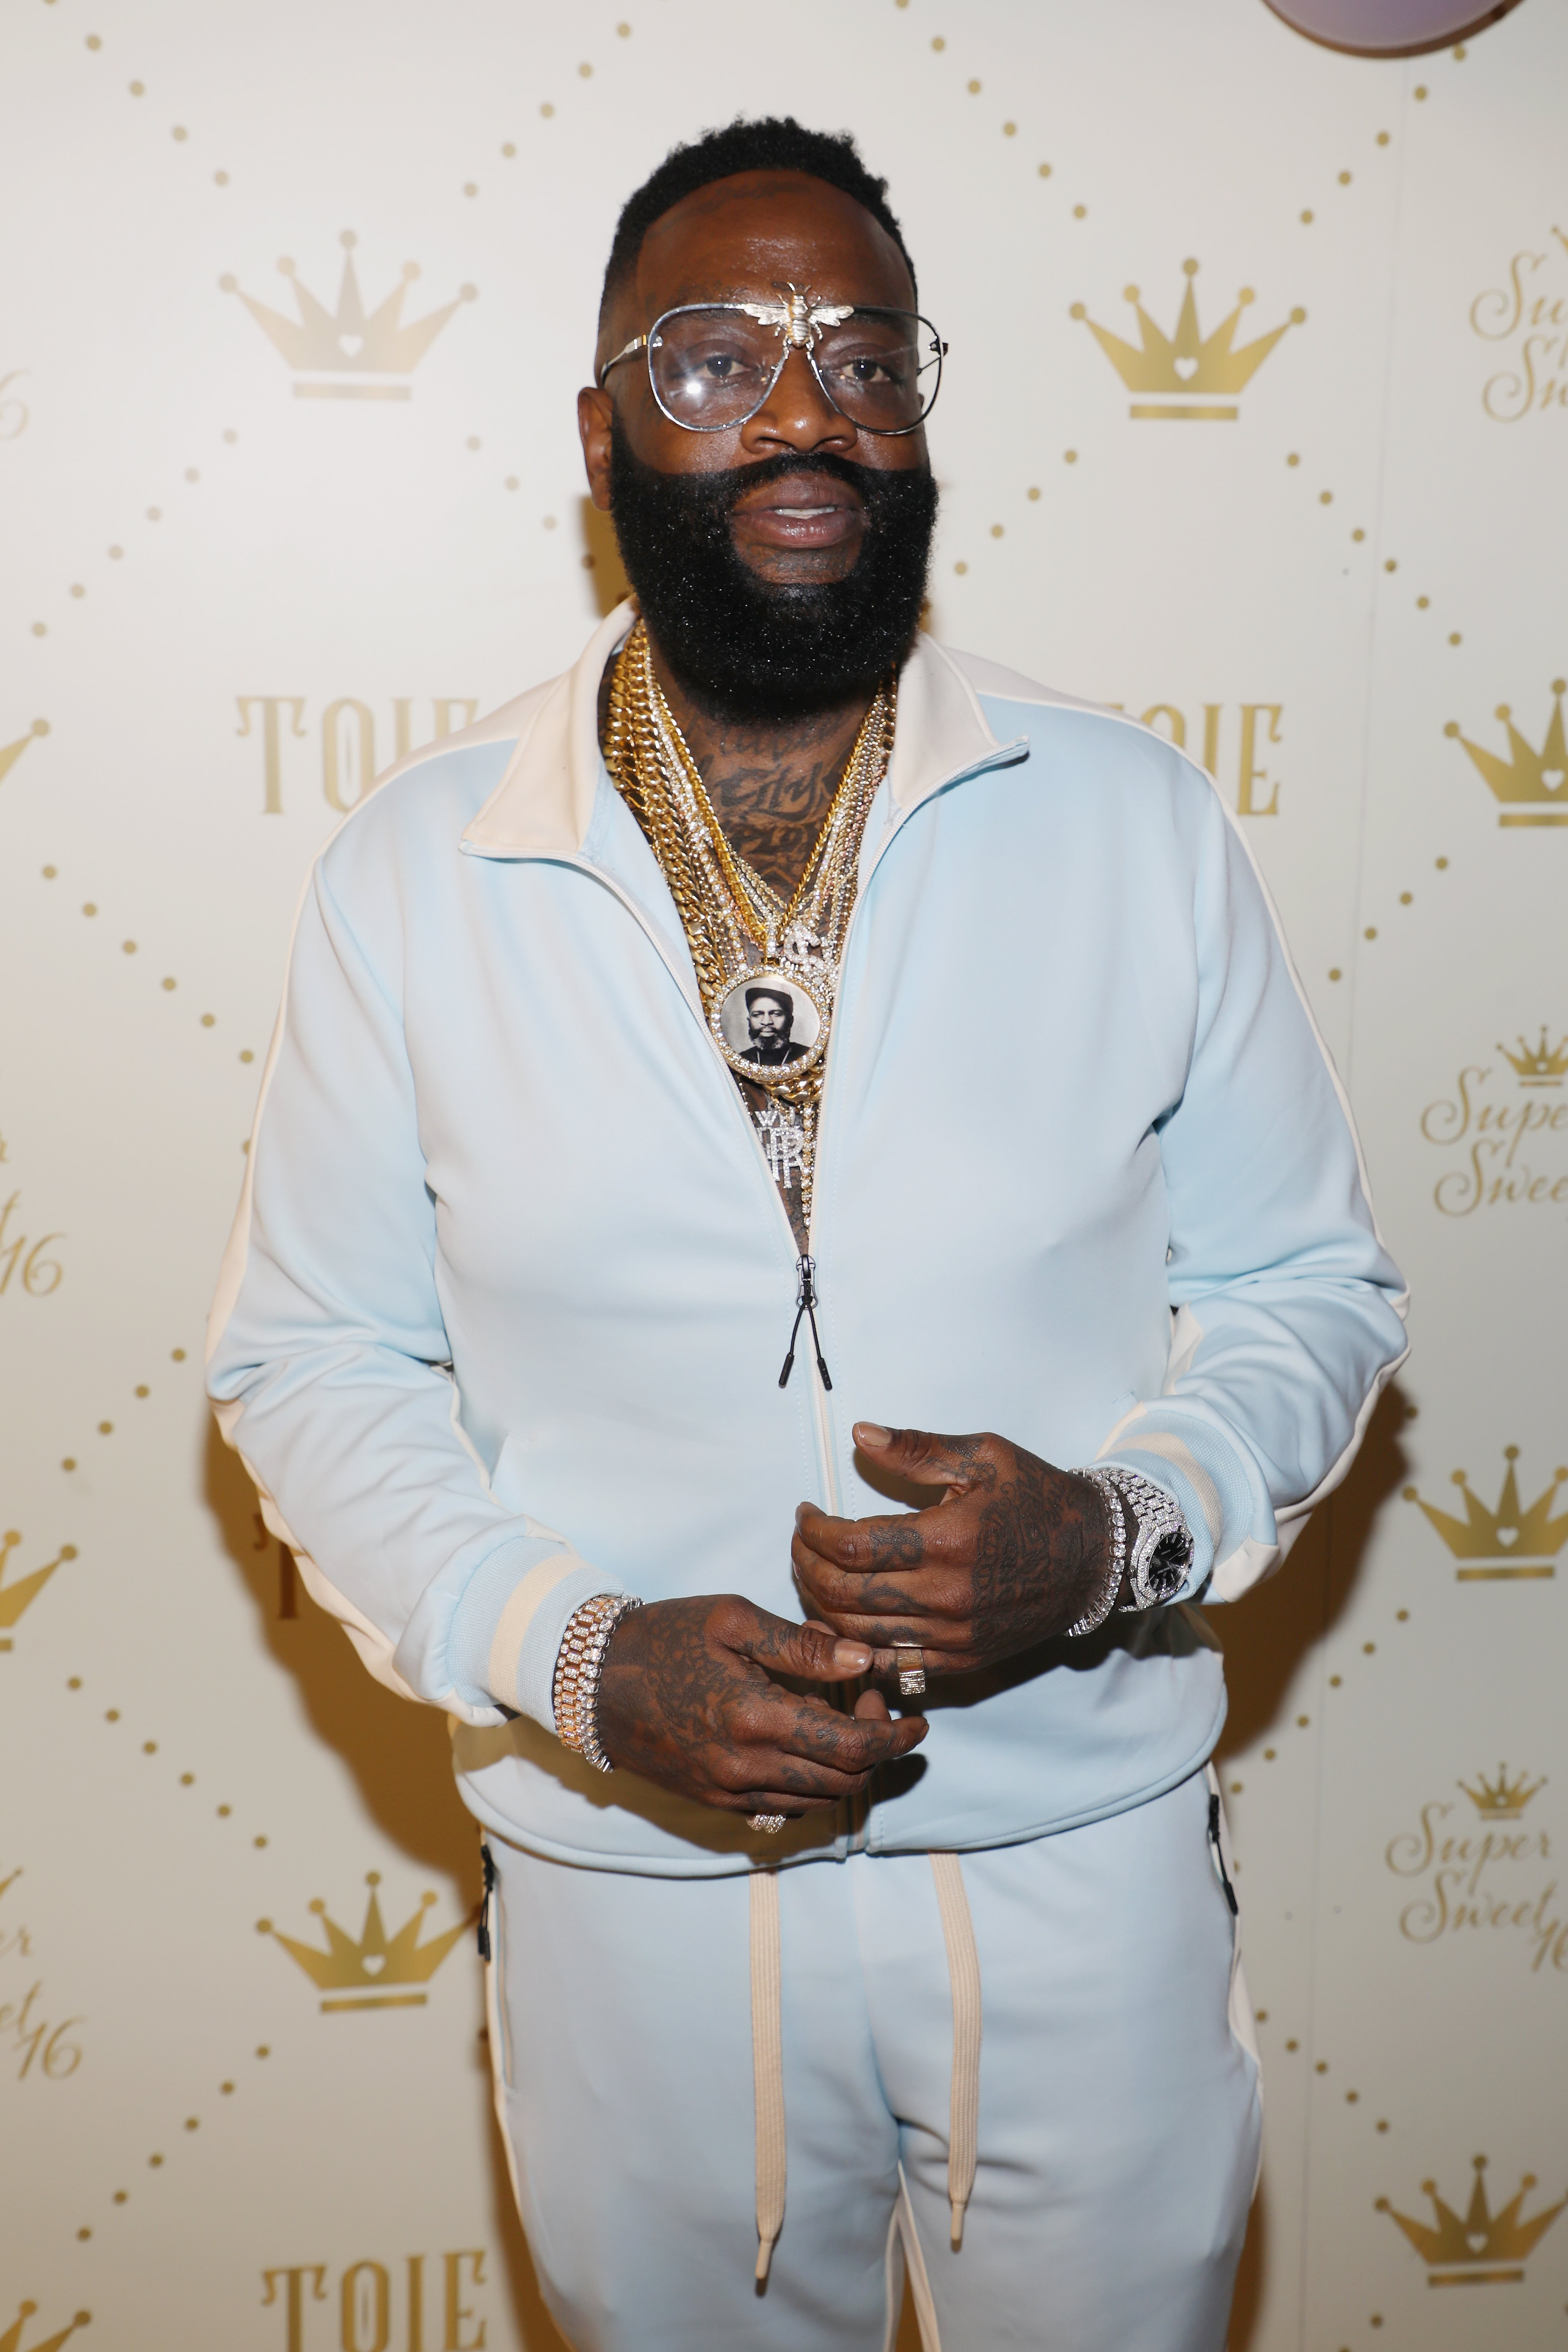 Rick Ross at Toie's Royal Court: Super Sweet 16 on Apr. 7, 2018 in Miami, Florida | Photo: Getty Images